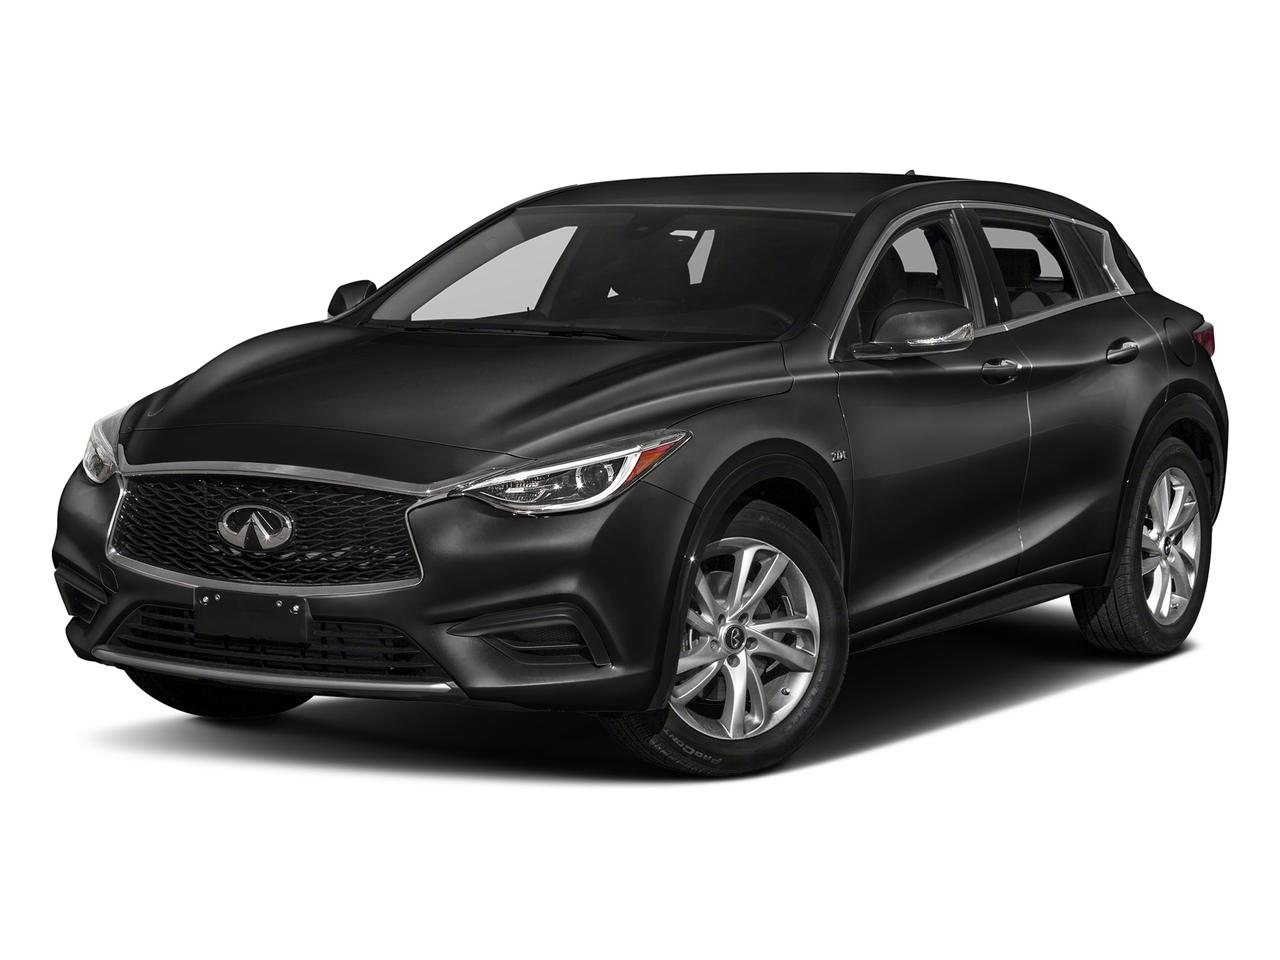 2017 INFINITI QX30 Vehicle Photo in Mission, TX 78572